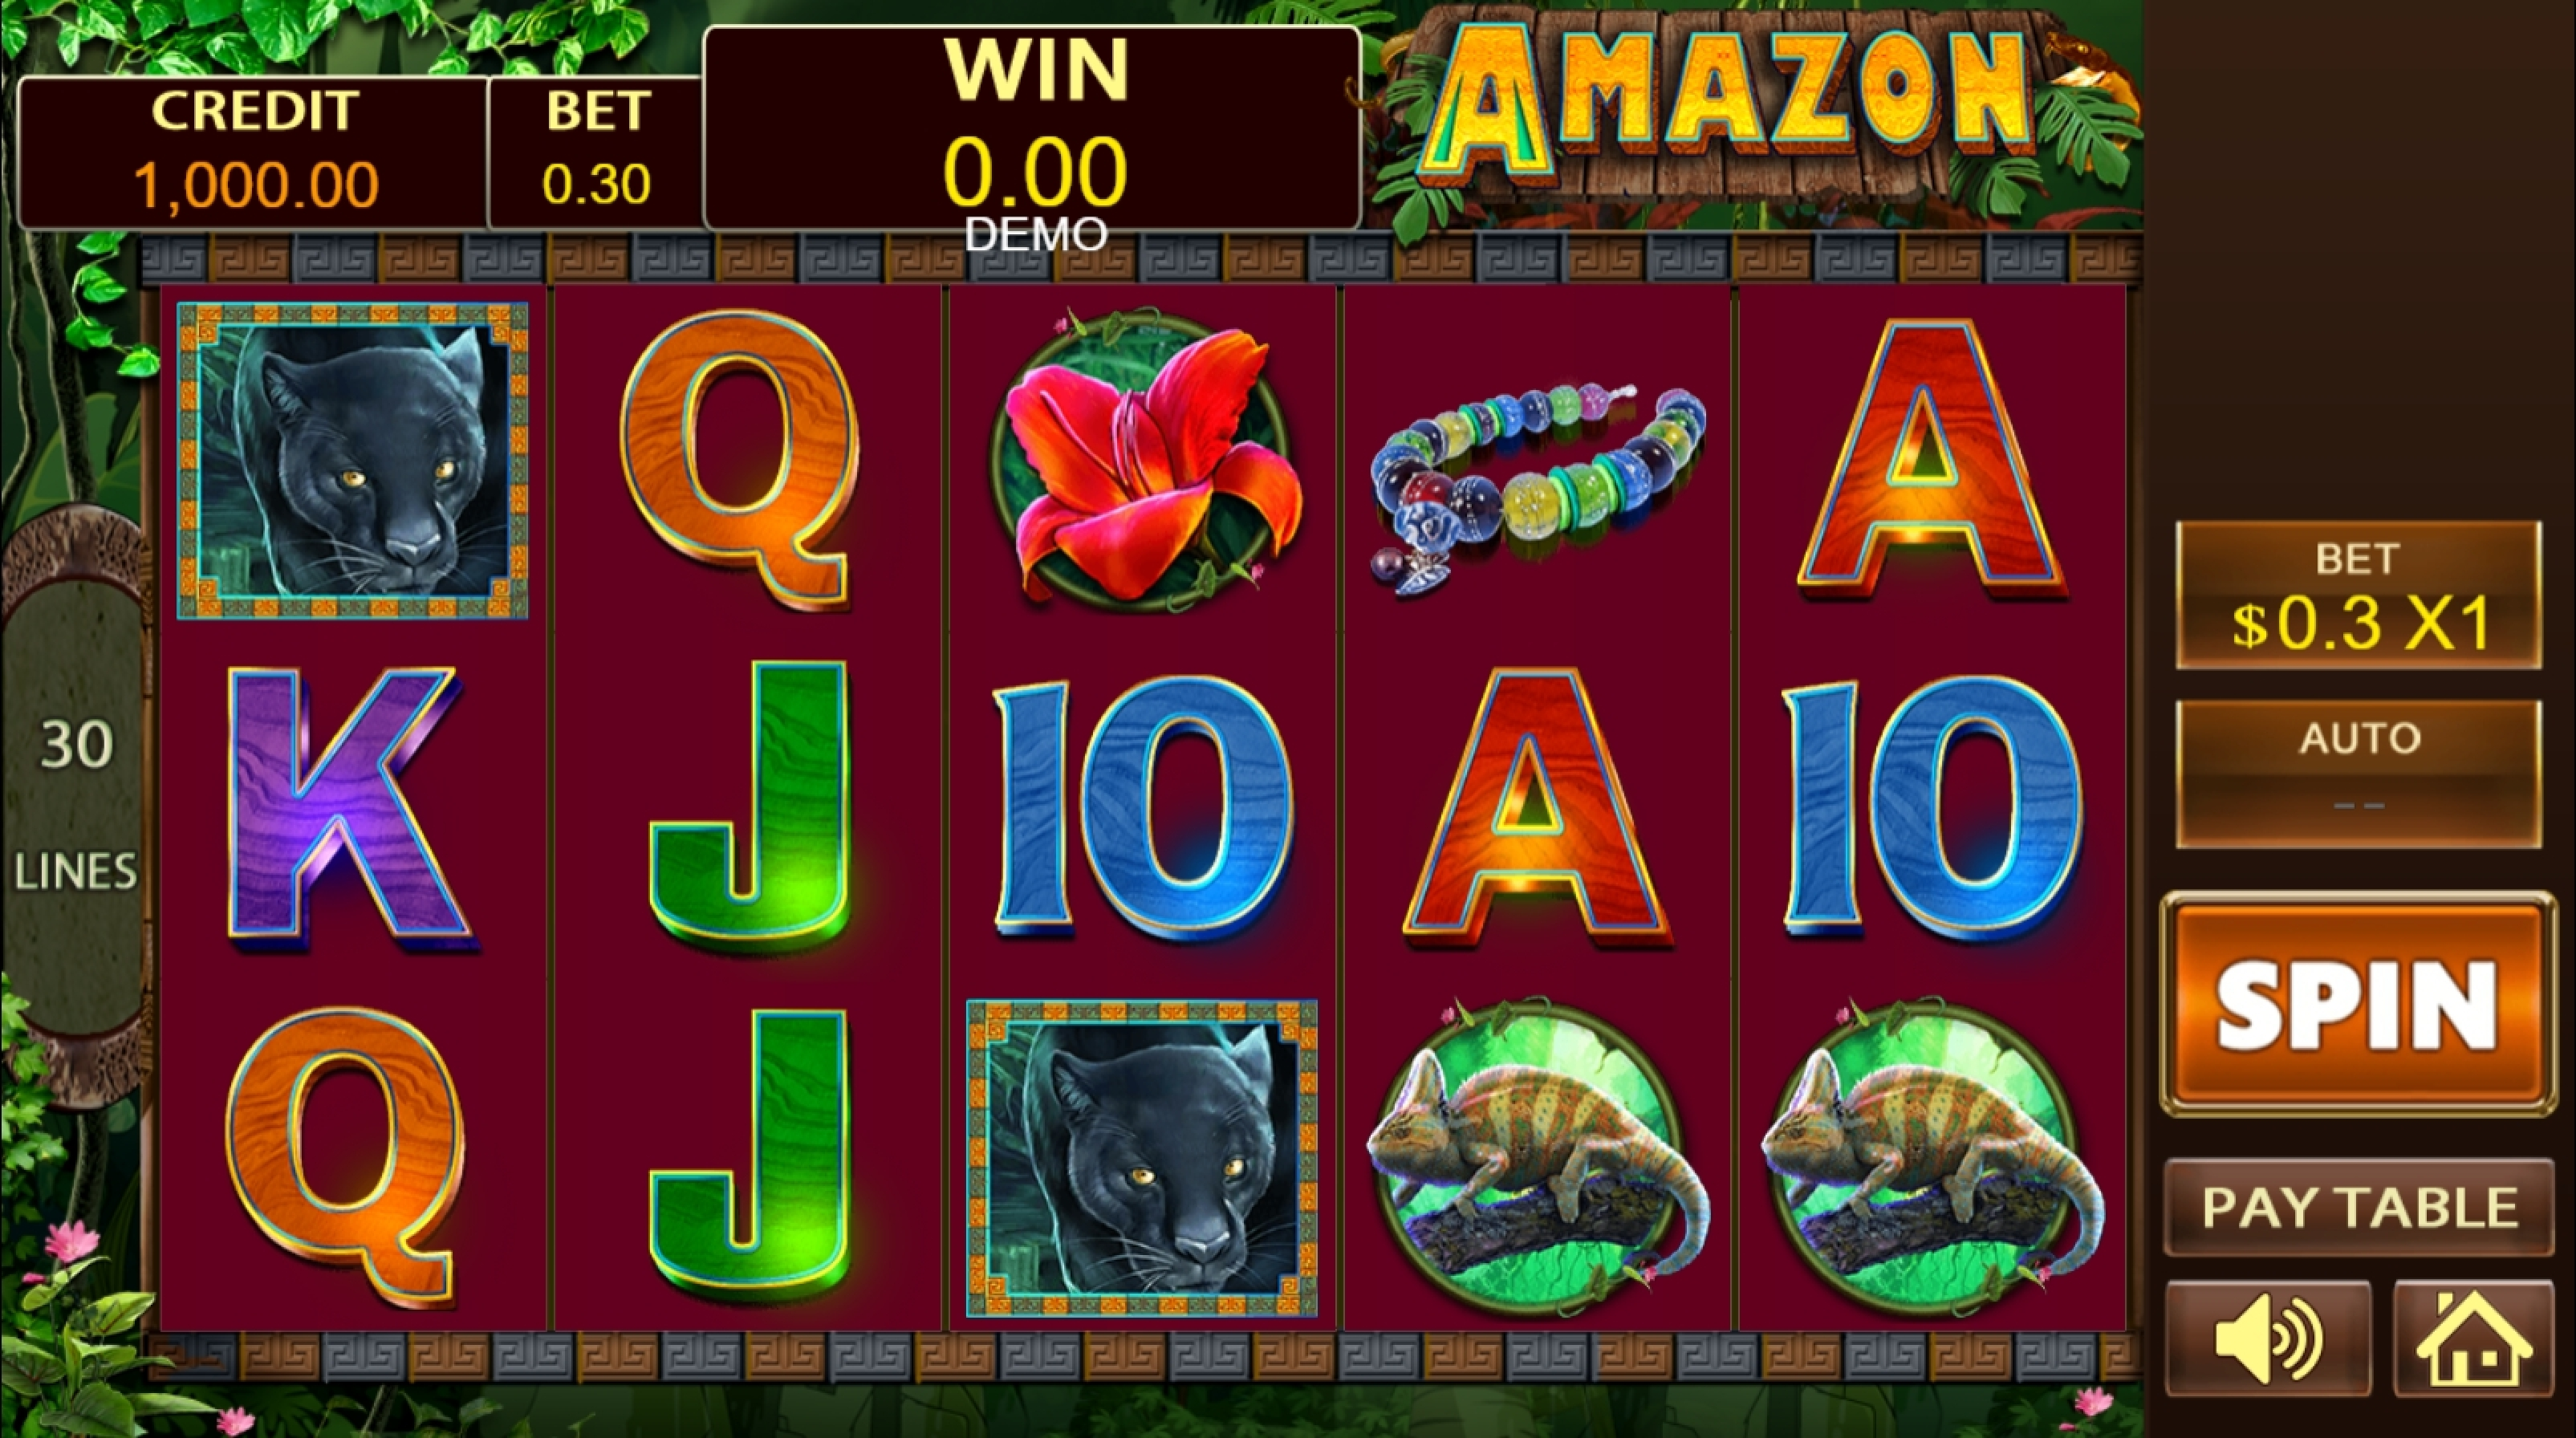 Reels in Amazon (PlayStar) Slot Game by PlayStar